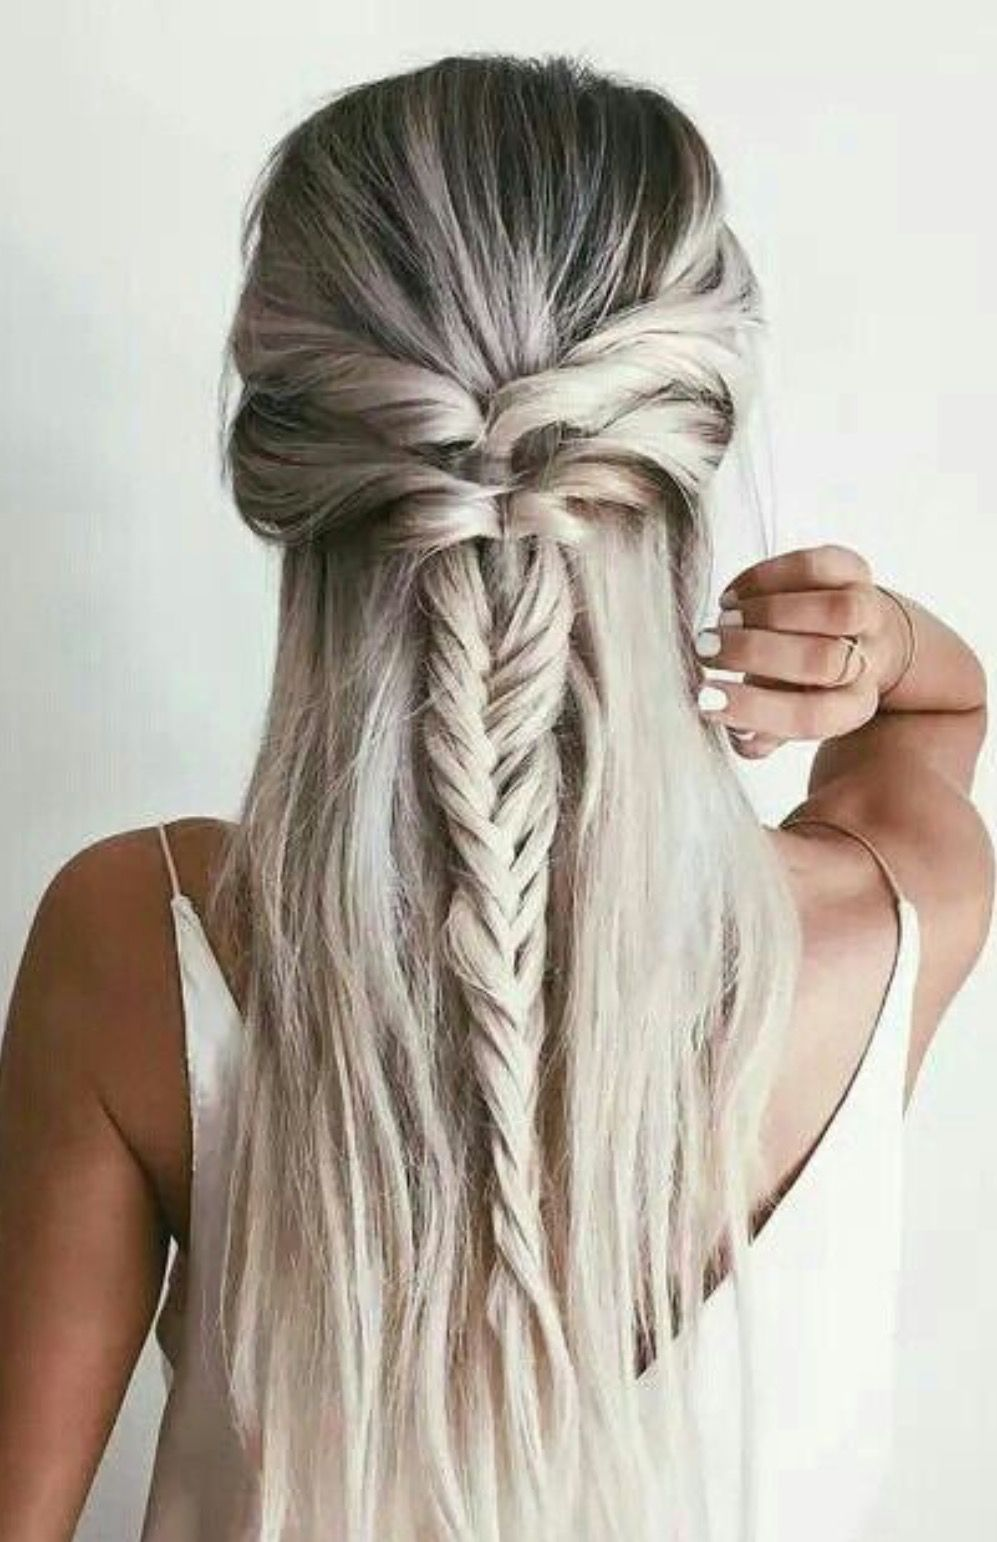 Grey Fishtail Plait Woven In Behind Half Up Half Down Hair Style Long Hair Styles Hair Styles Medium Hair Styles